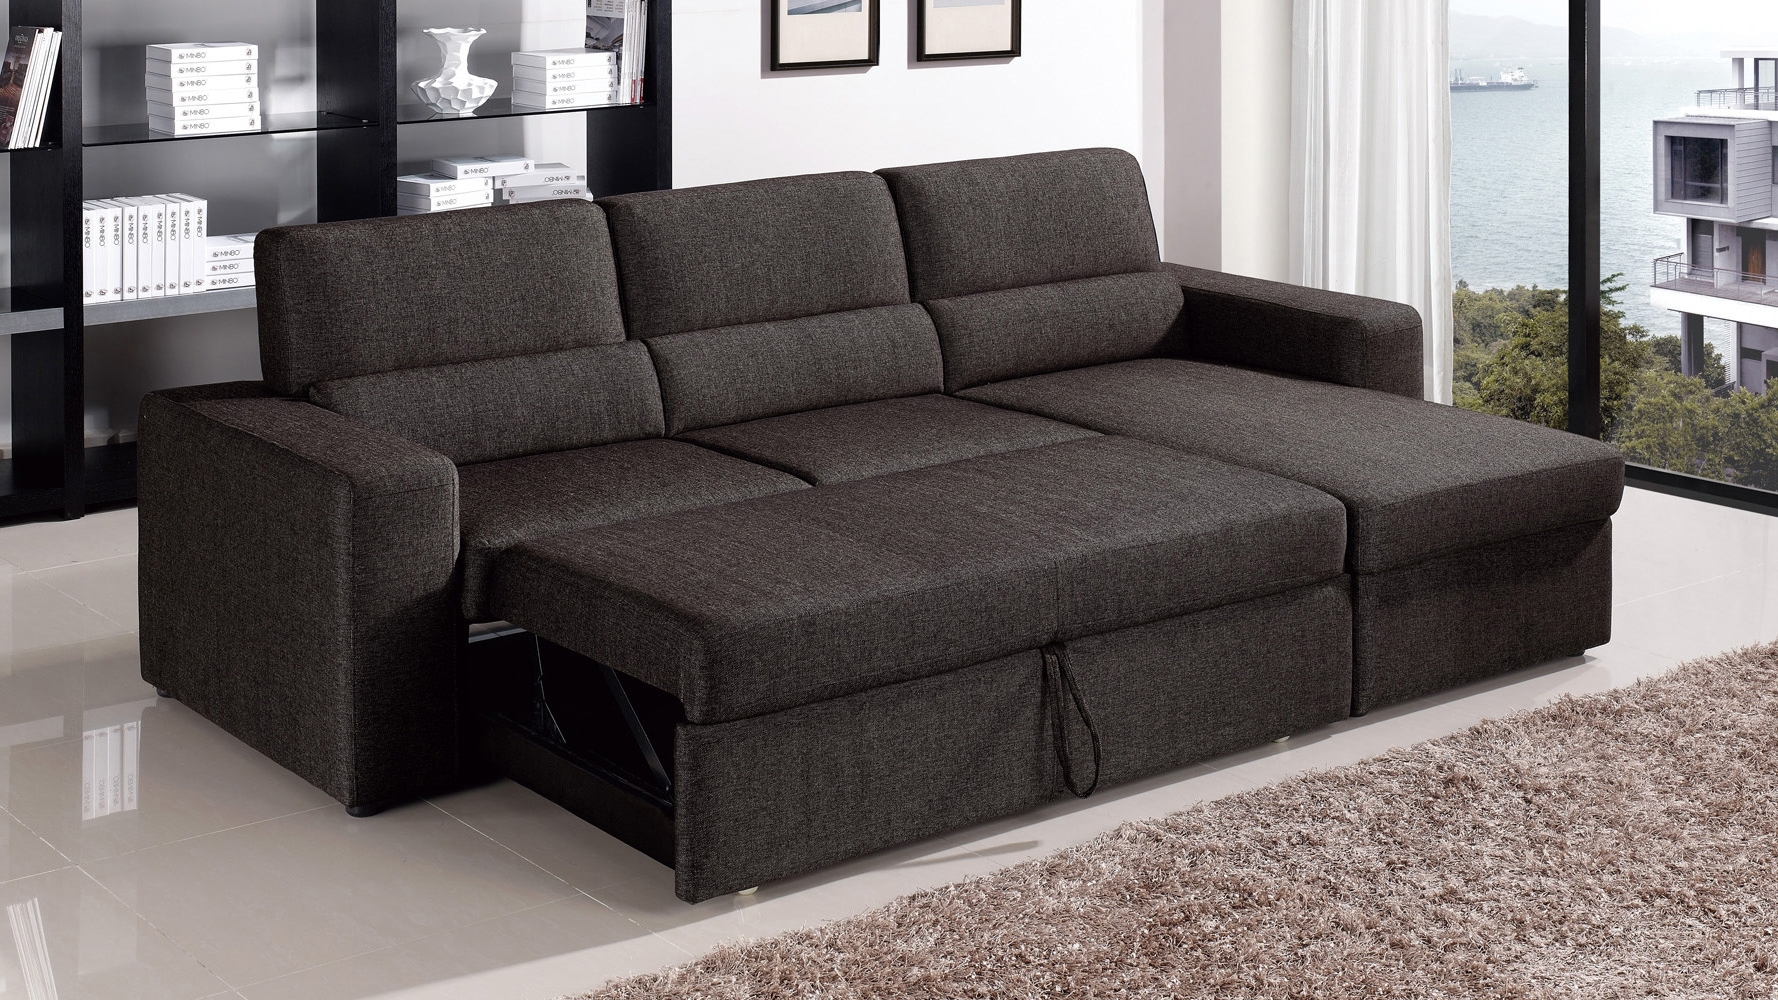 Well Known Sofa Chaise Sleepers Pertaining To Black/brown Clubber Sleeper Sectional Sofa (View 15 of 15)